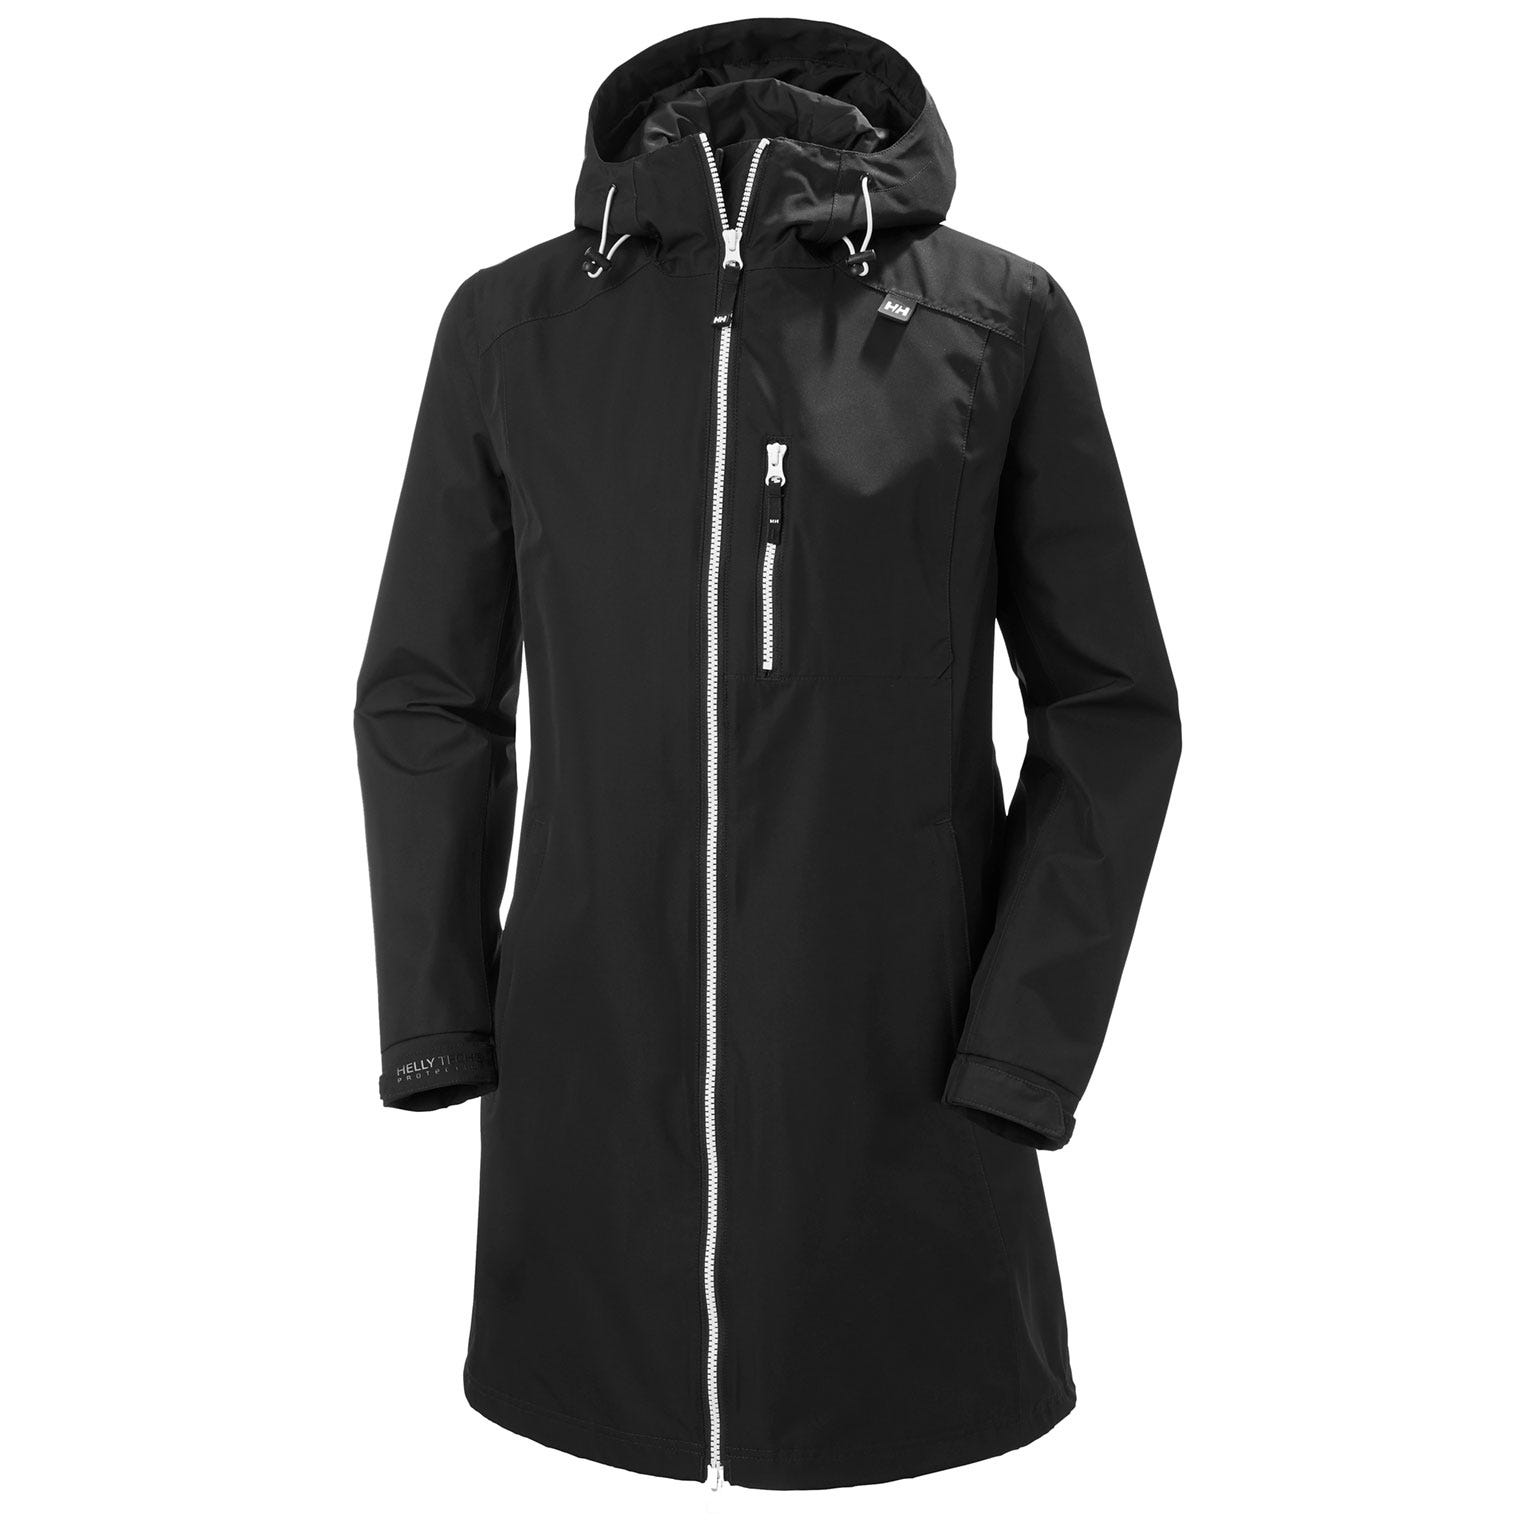 Womens Long Belfast 3/4 Length Rain Jacket | Helly Hansen Womens Black S